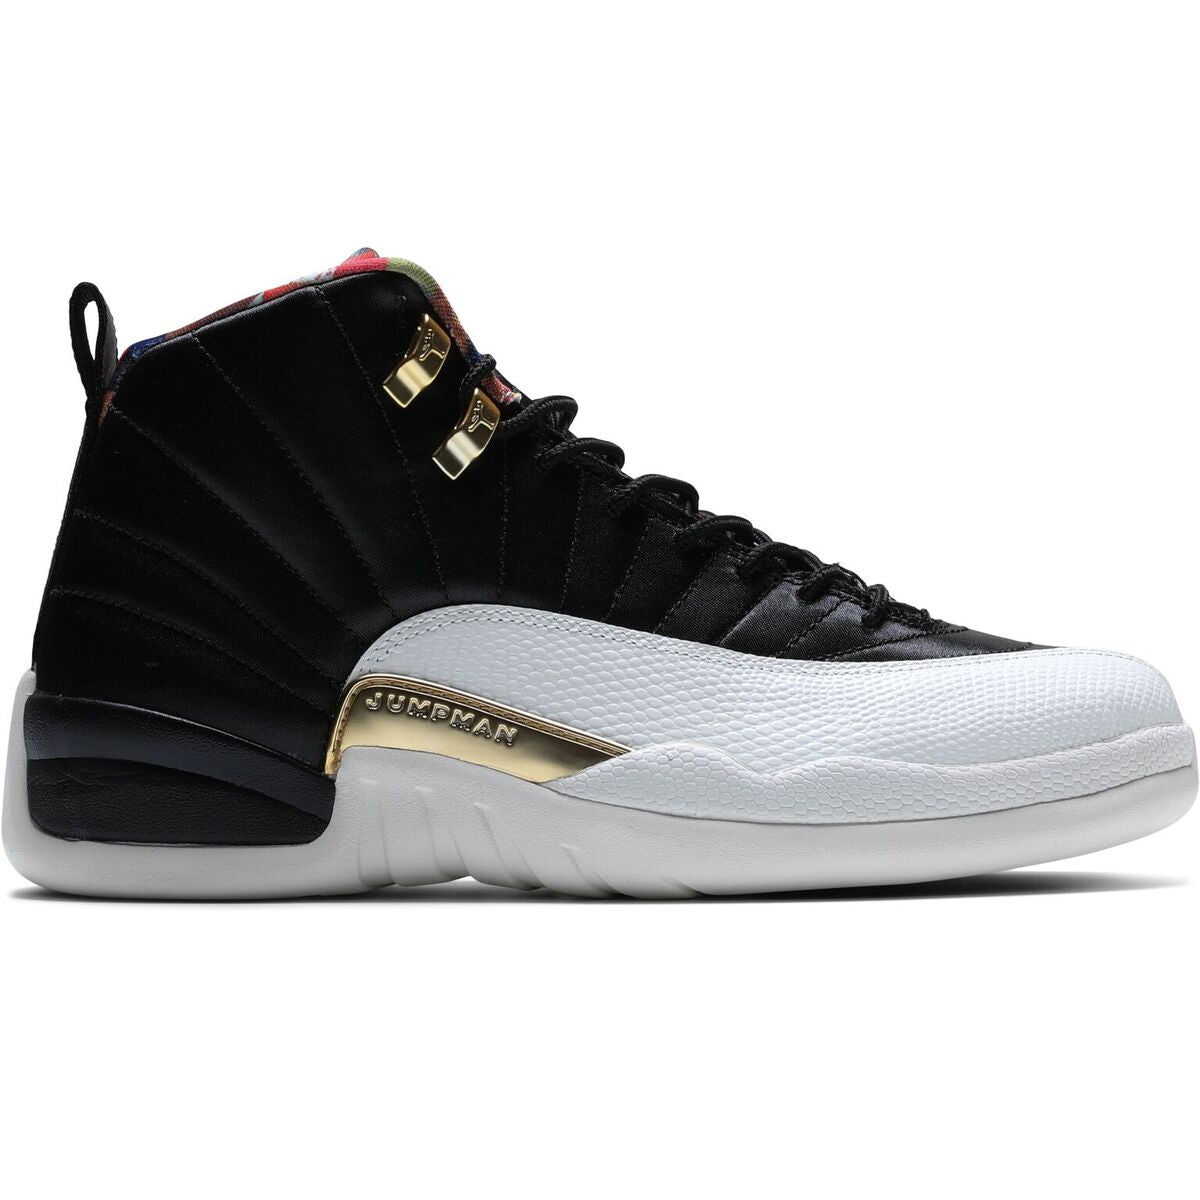 official photos bdbe7 742f4 The shoe is then finished off with a set of Chinese characters on the  tongue of the left sneaker and the silhouette s typical Air Jordan and  23   branding ...